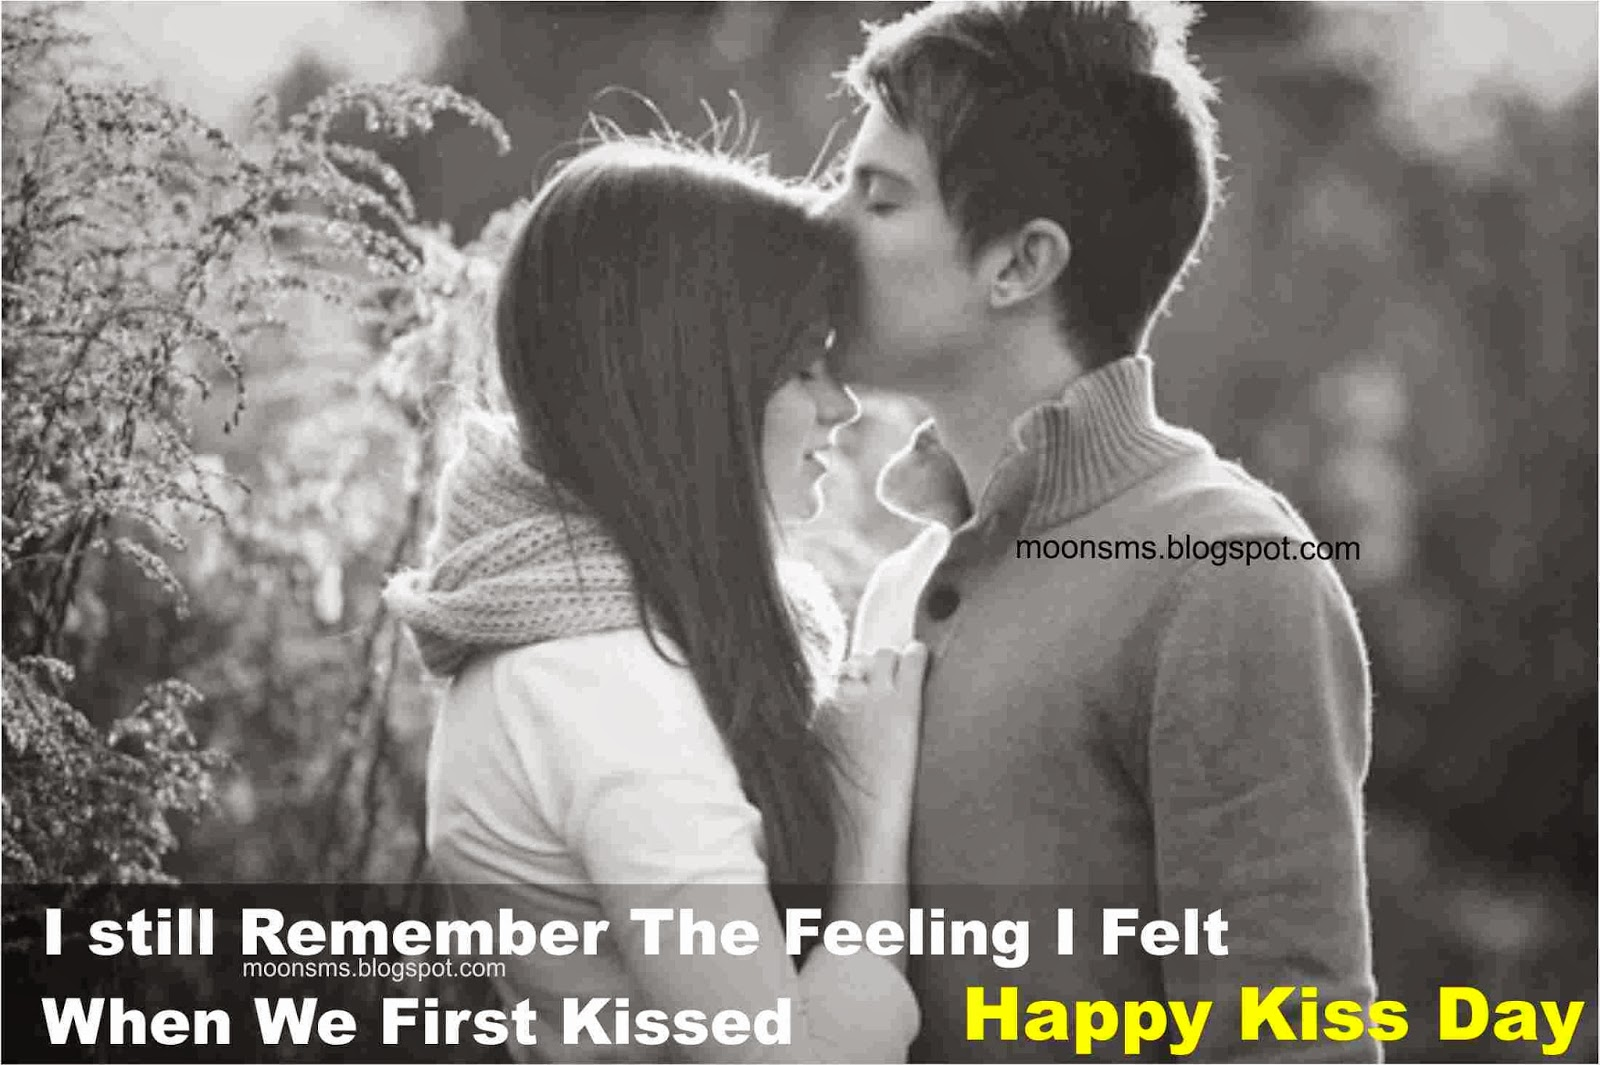 Christian post moonsms happy kiss day kiss sms text message wishes happy kiss day kiss sms text message wishes quotes greetings in english hindi gif animated m4hsunfo